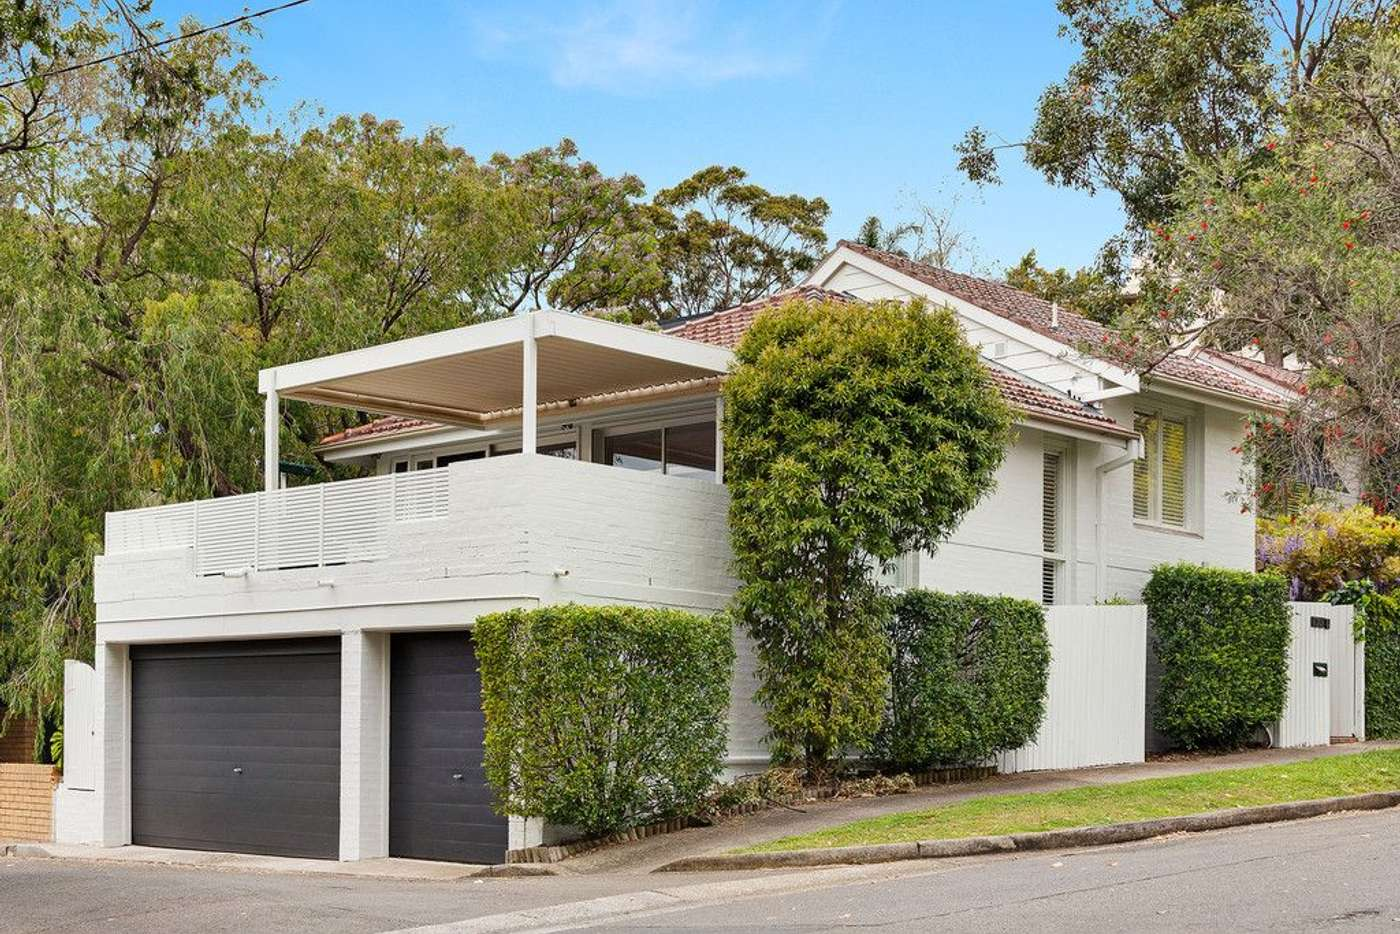 Seventh view of Homely house listing, 1c Ada Street, Cremorne NSW 2090